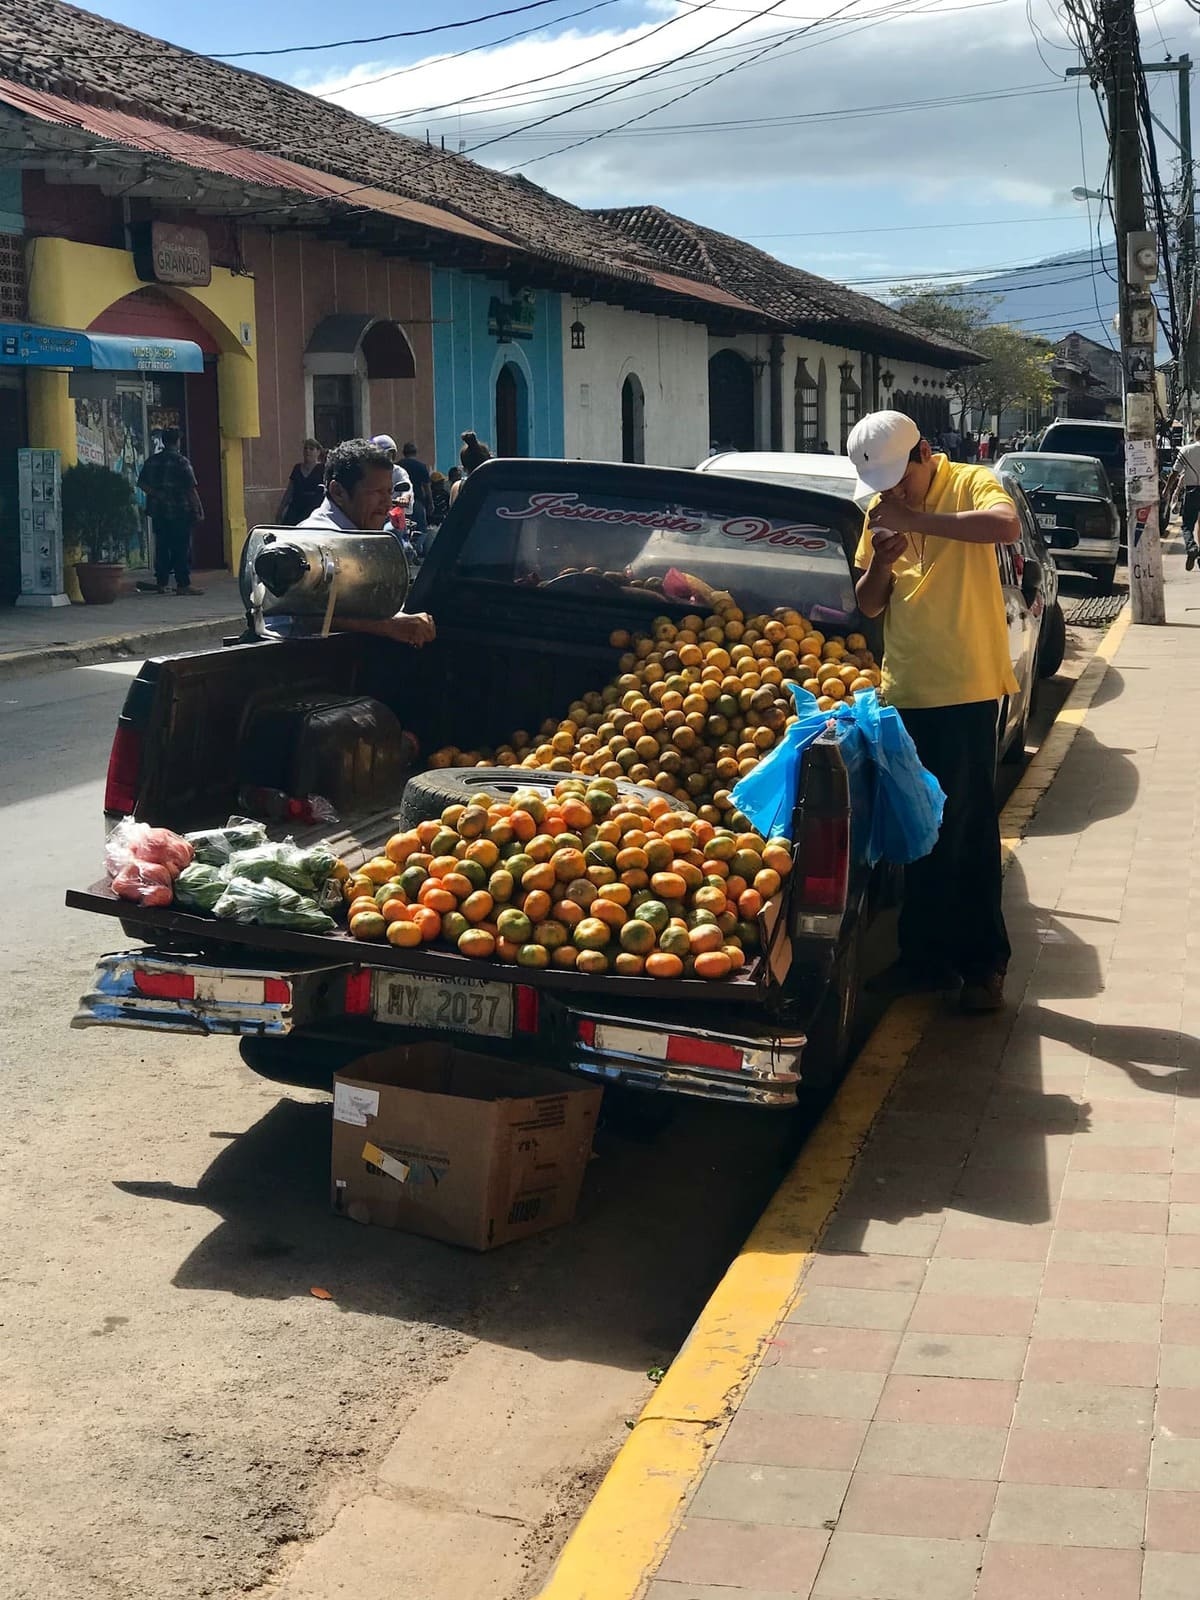 Truck full of oranges.